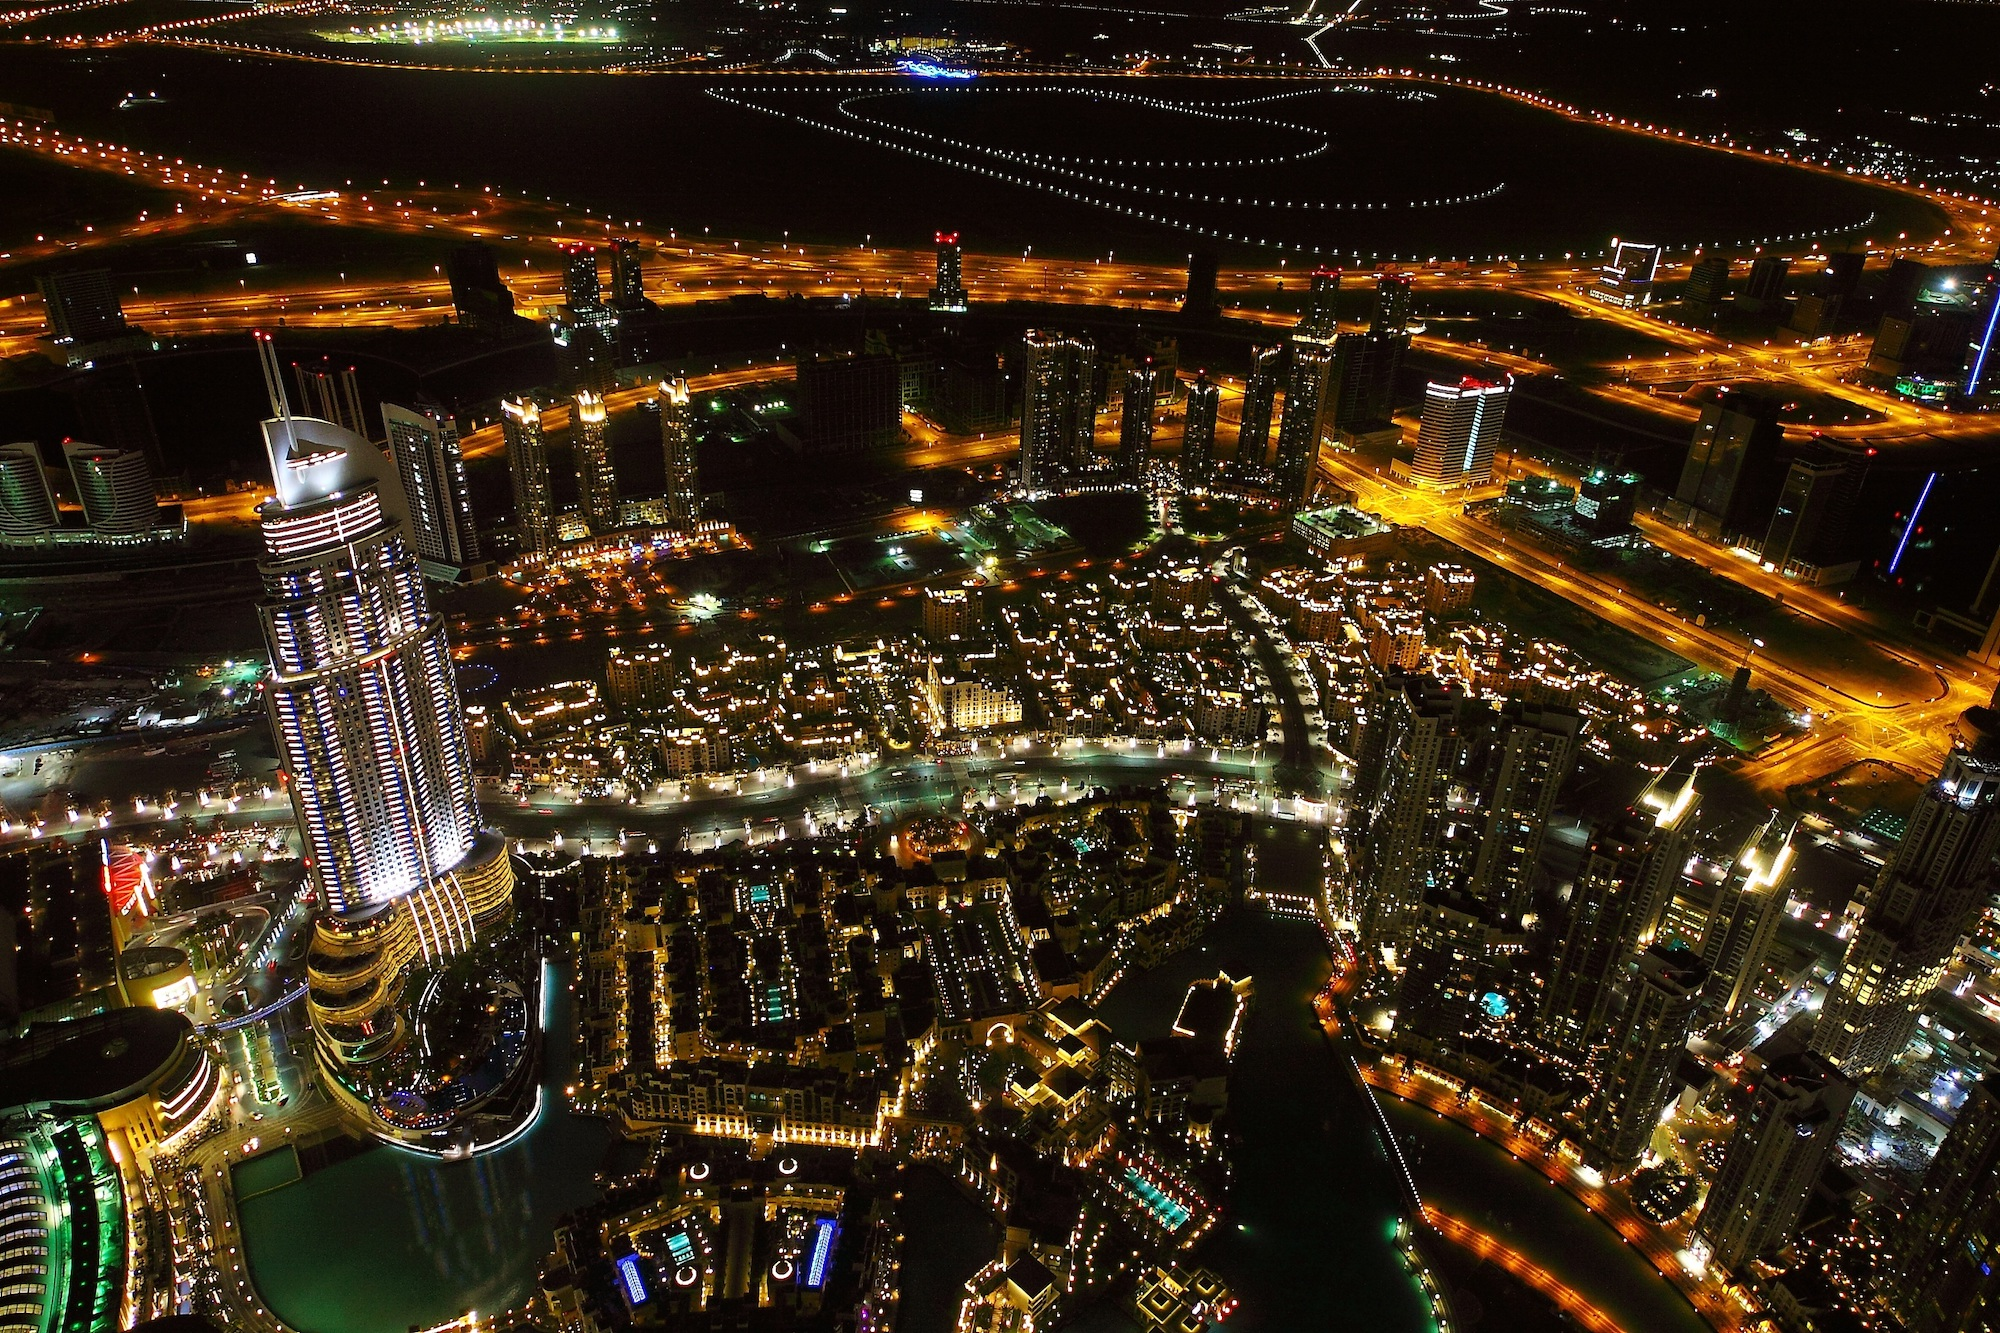 Dubai at Night